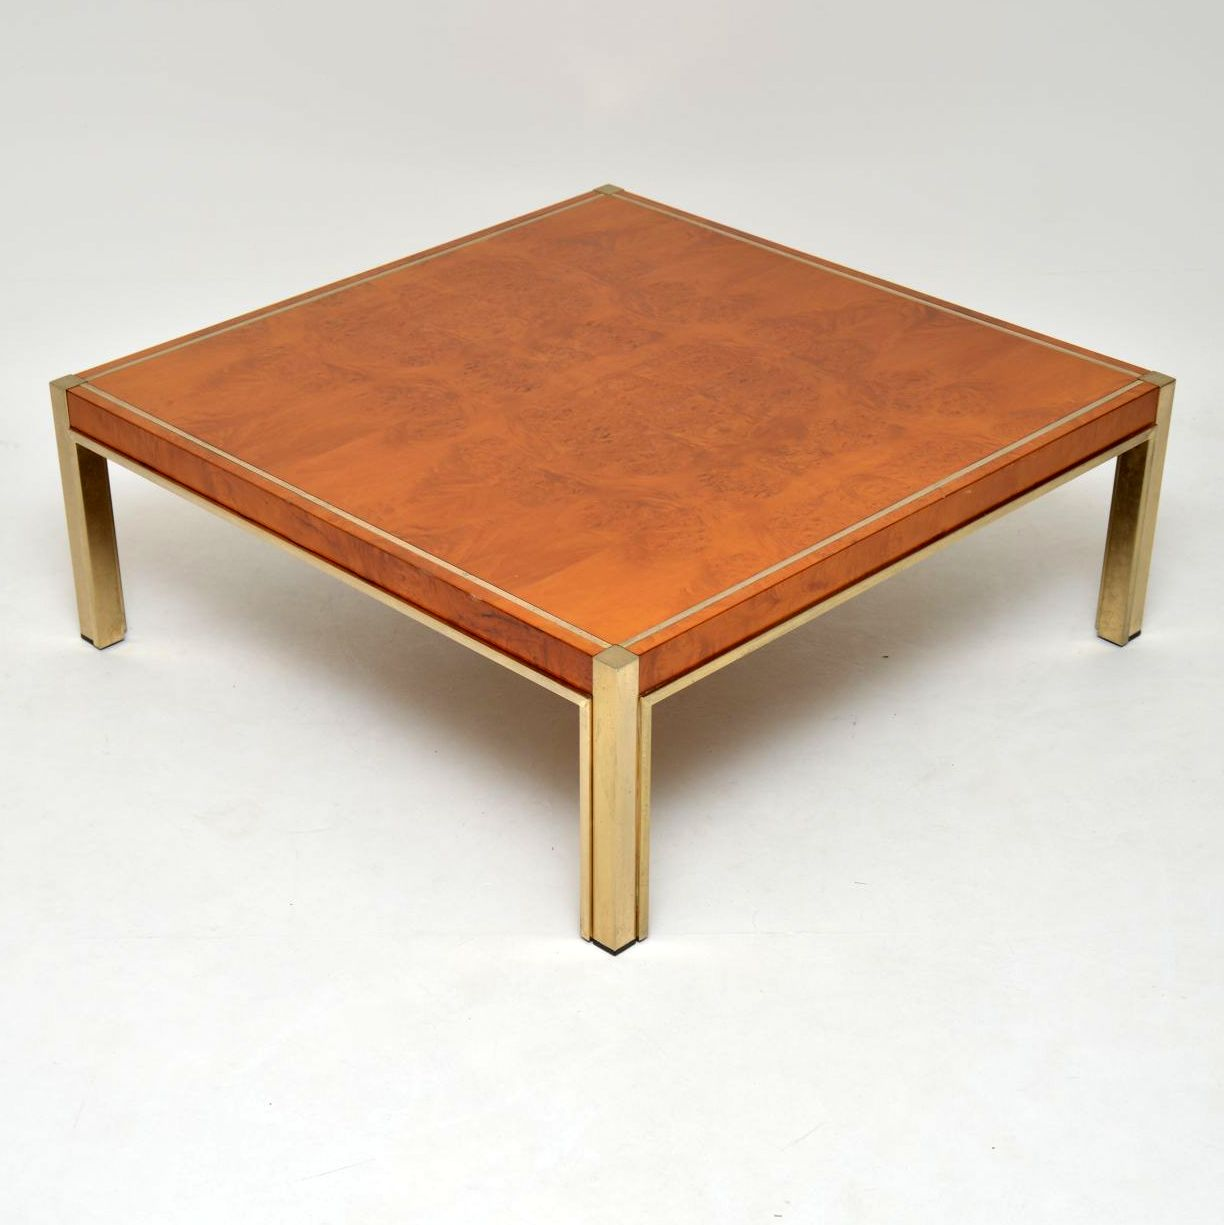 italian_retro_vintage_walnut_brass_coffee_table_zevi_2